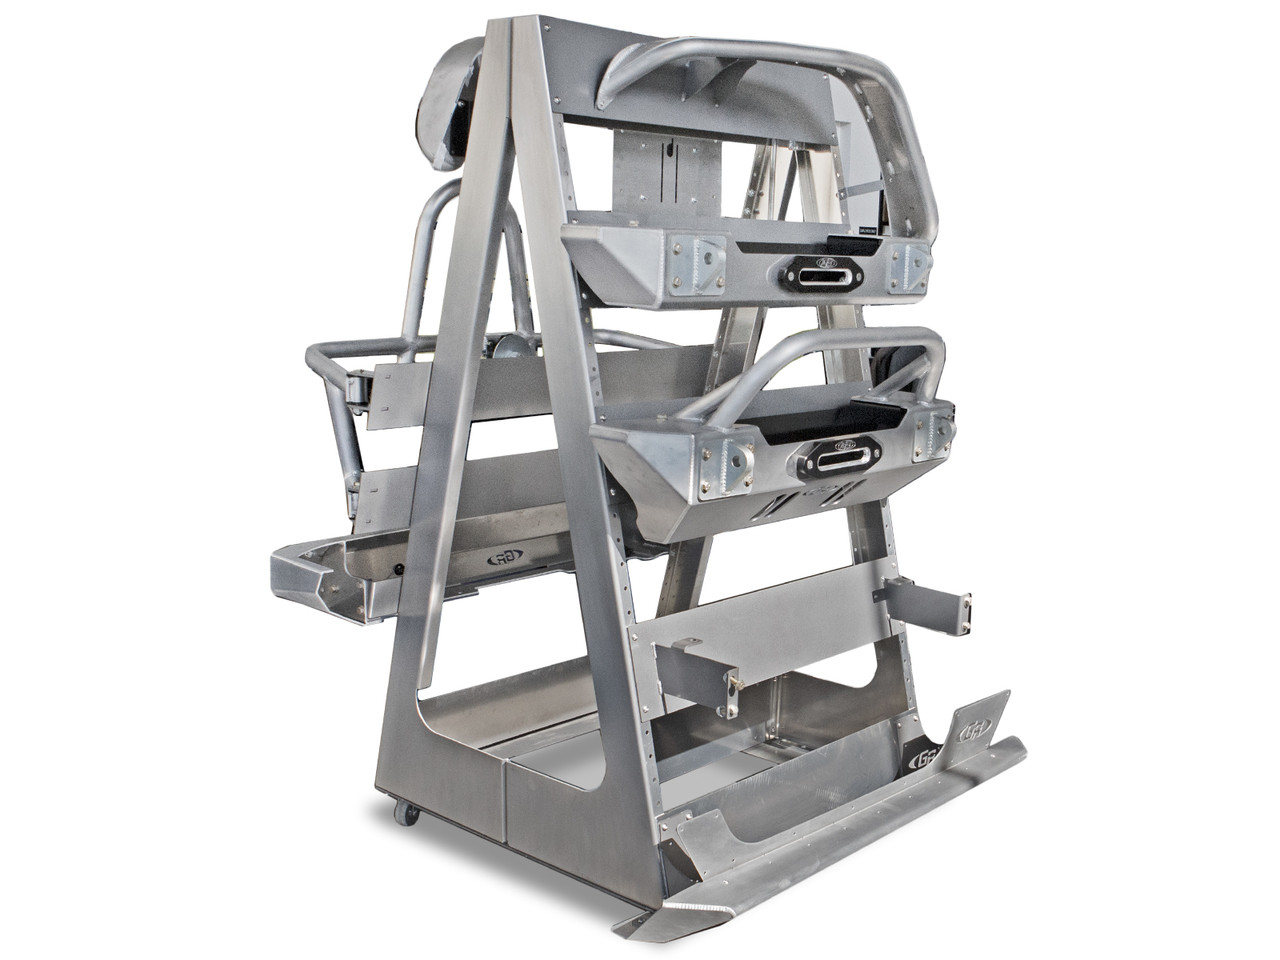 GenRight Rolling Aluminum Product Display (Product not included)